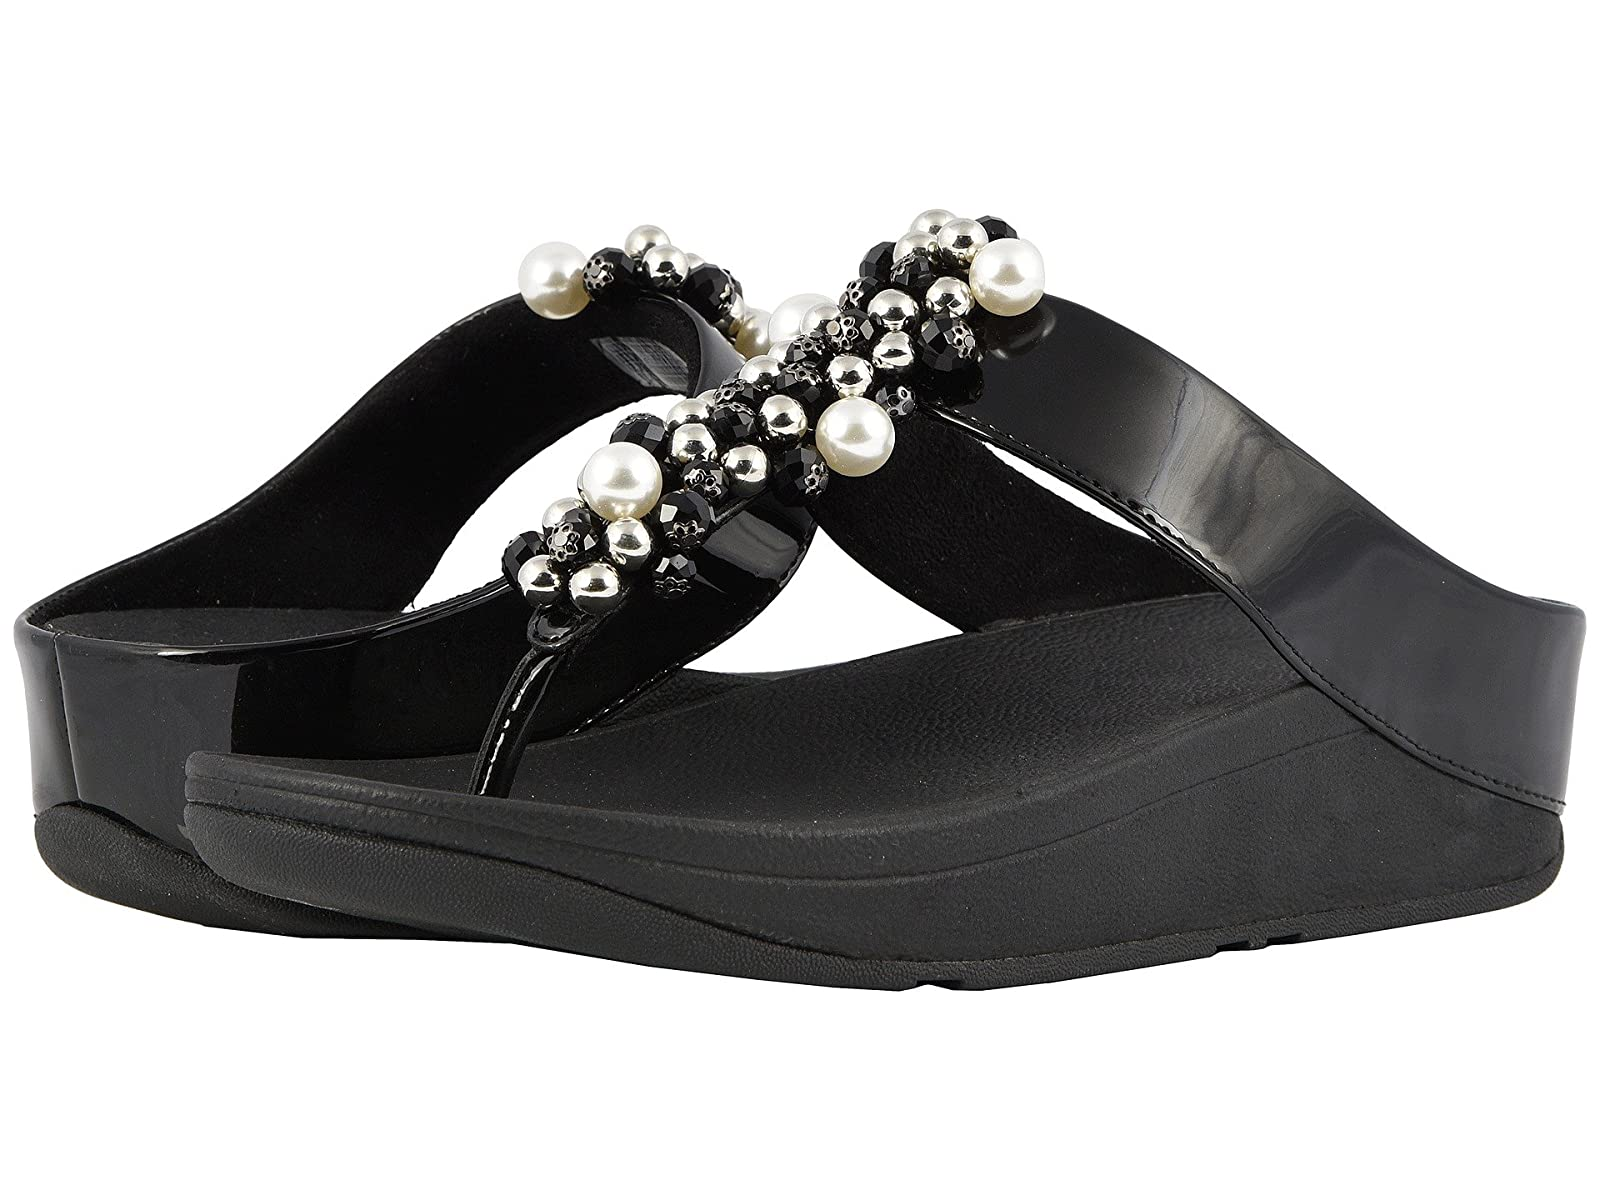 FitFlop Deco Toe Thong SandalsAtmospheric grades have affordable shoes